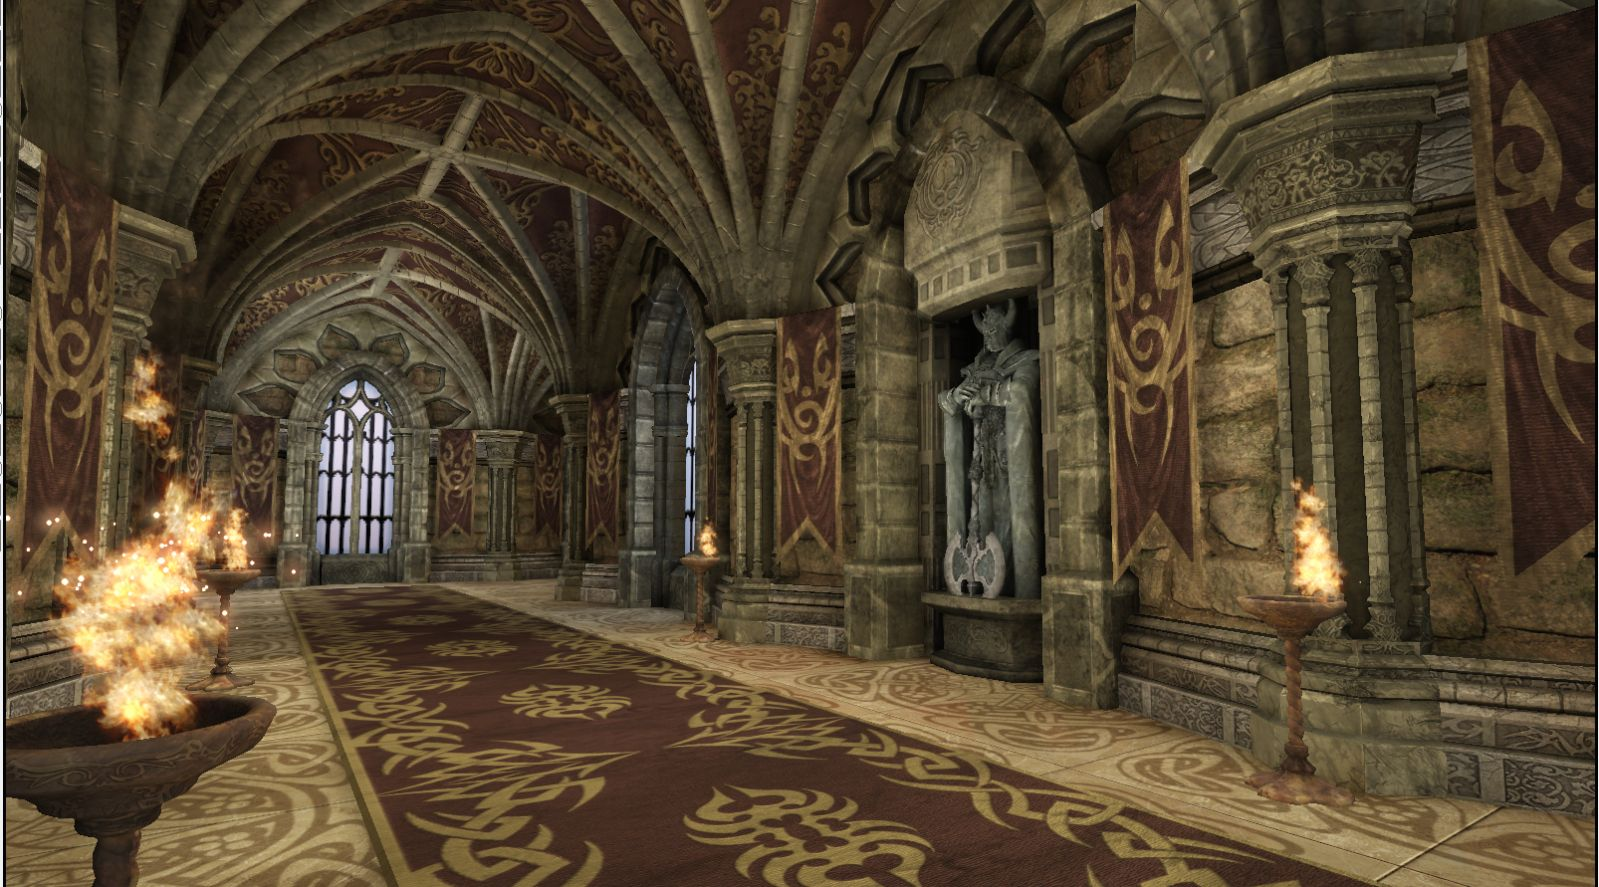 interior wallpaper 3d - photo #34